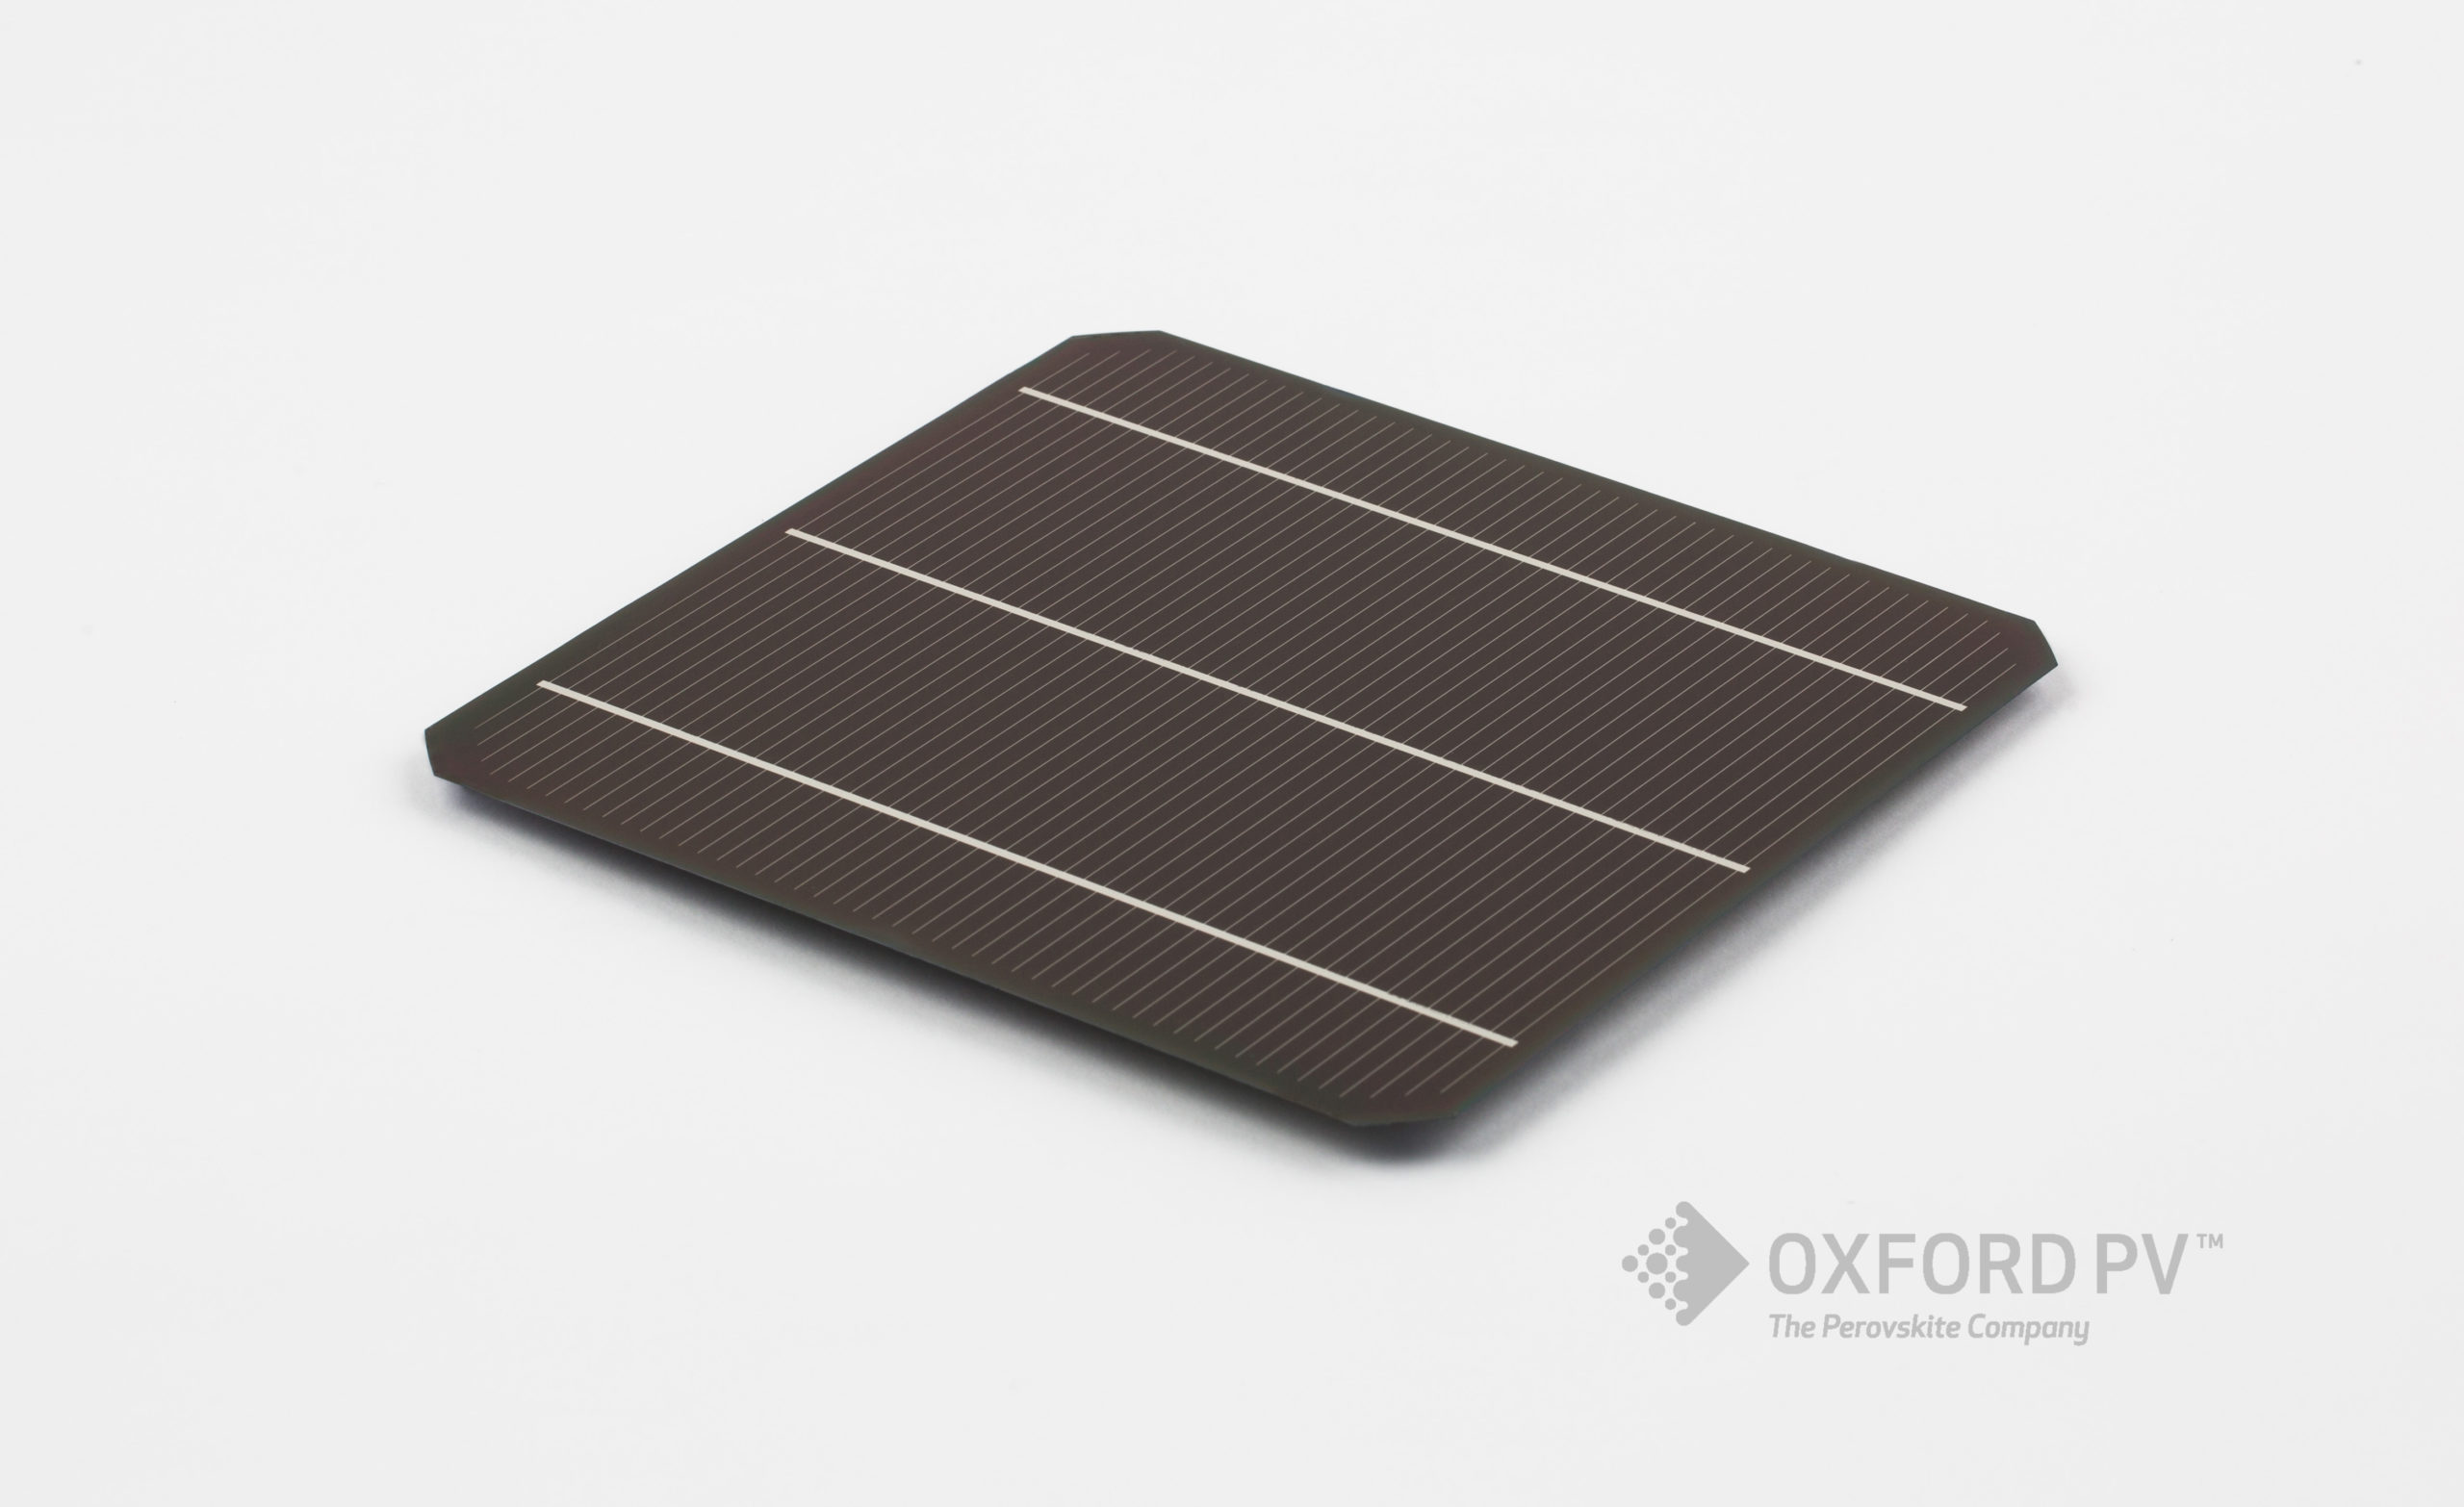 The partnership brings perovskite solar cell technology a significant step closer to commercialisation. Credit: Oxford PV